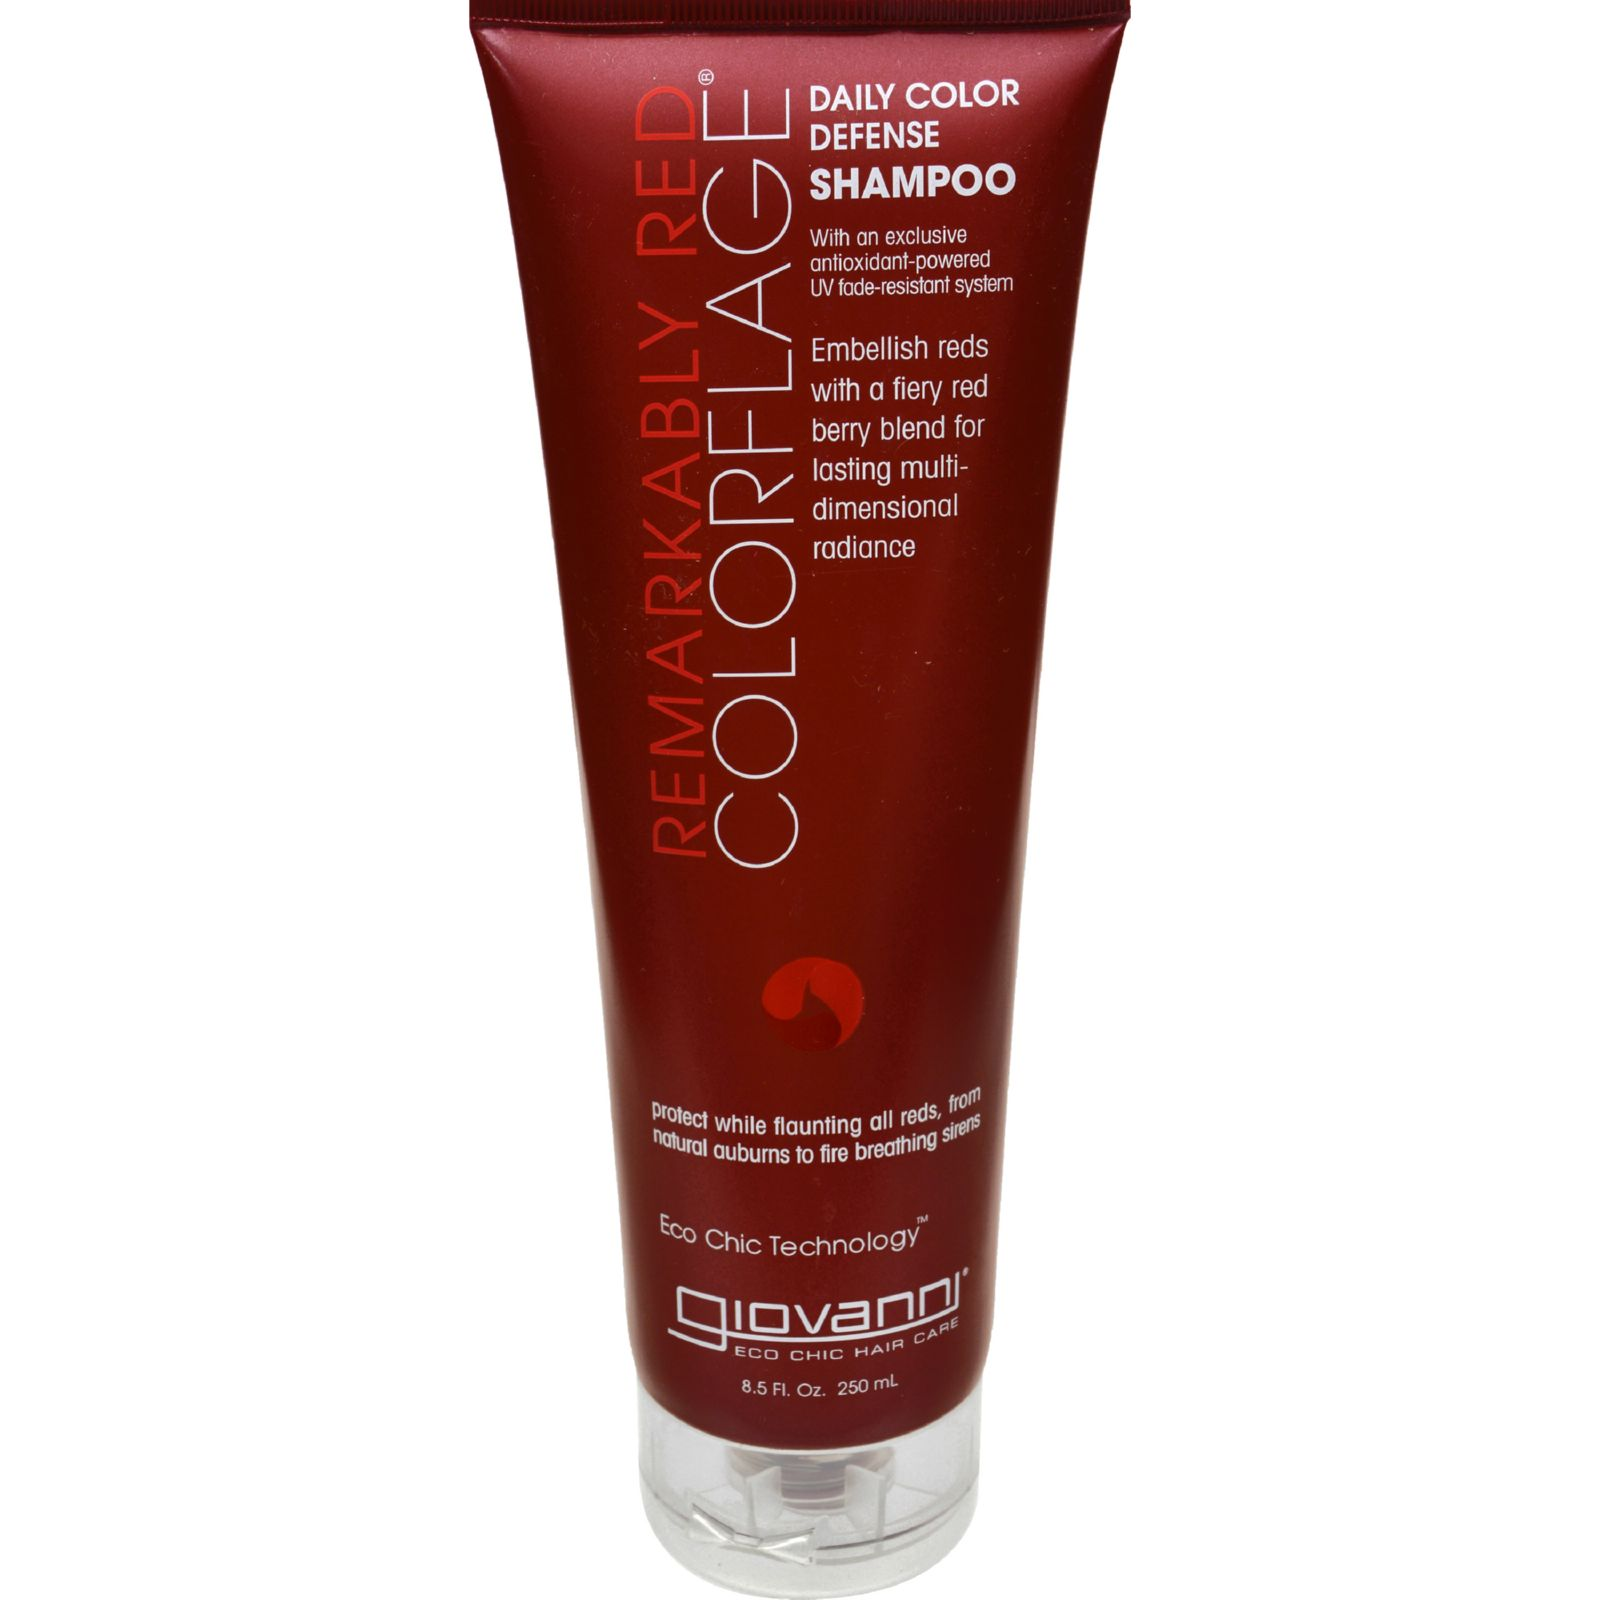 Giovanni Colorflage Color Defense Shampoo Remarkably Red - 8.5 fl oz